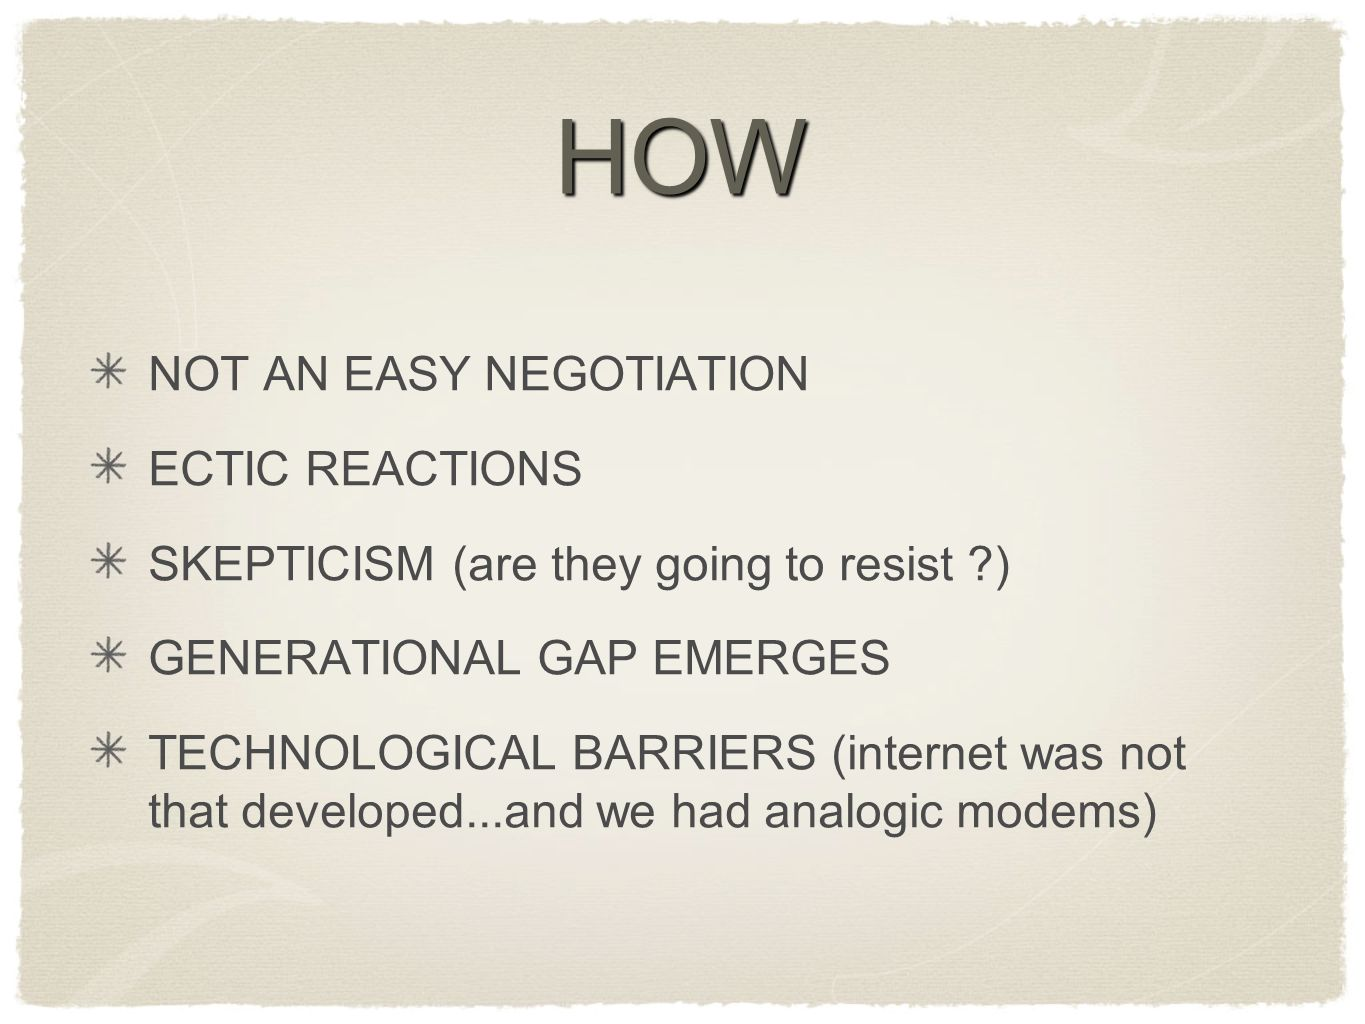 HOW NOT AN EASY NEGOTIATION ECTIC REACTIONS SKEPTICISM (are they going to resist ?) GENERATIONAL GAP EMERGES TECHNOLOGICAL BARRIERS (internet was not